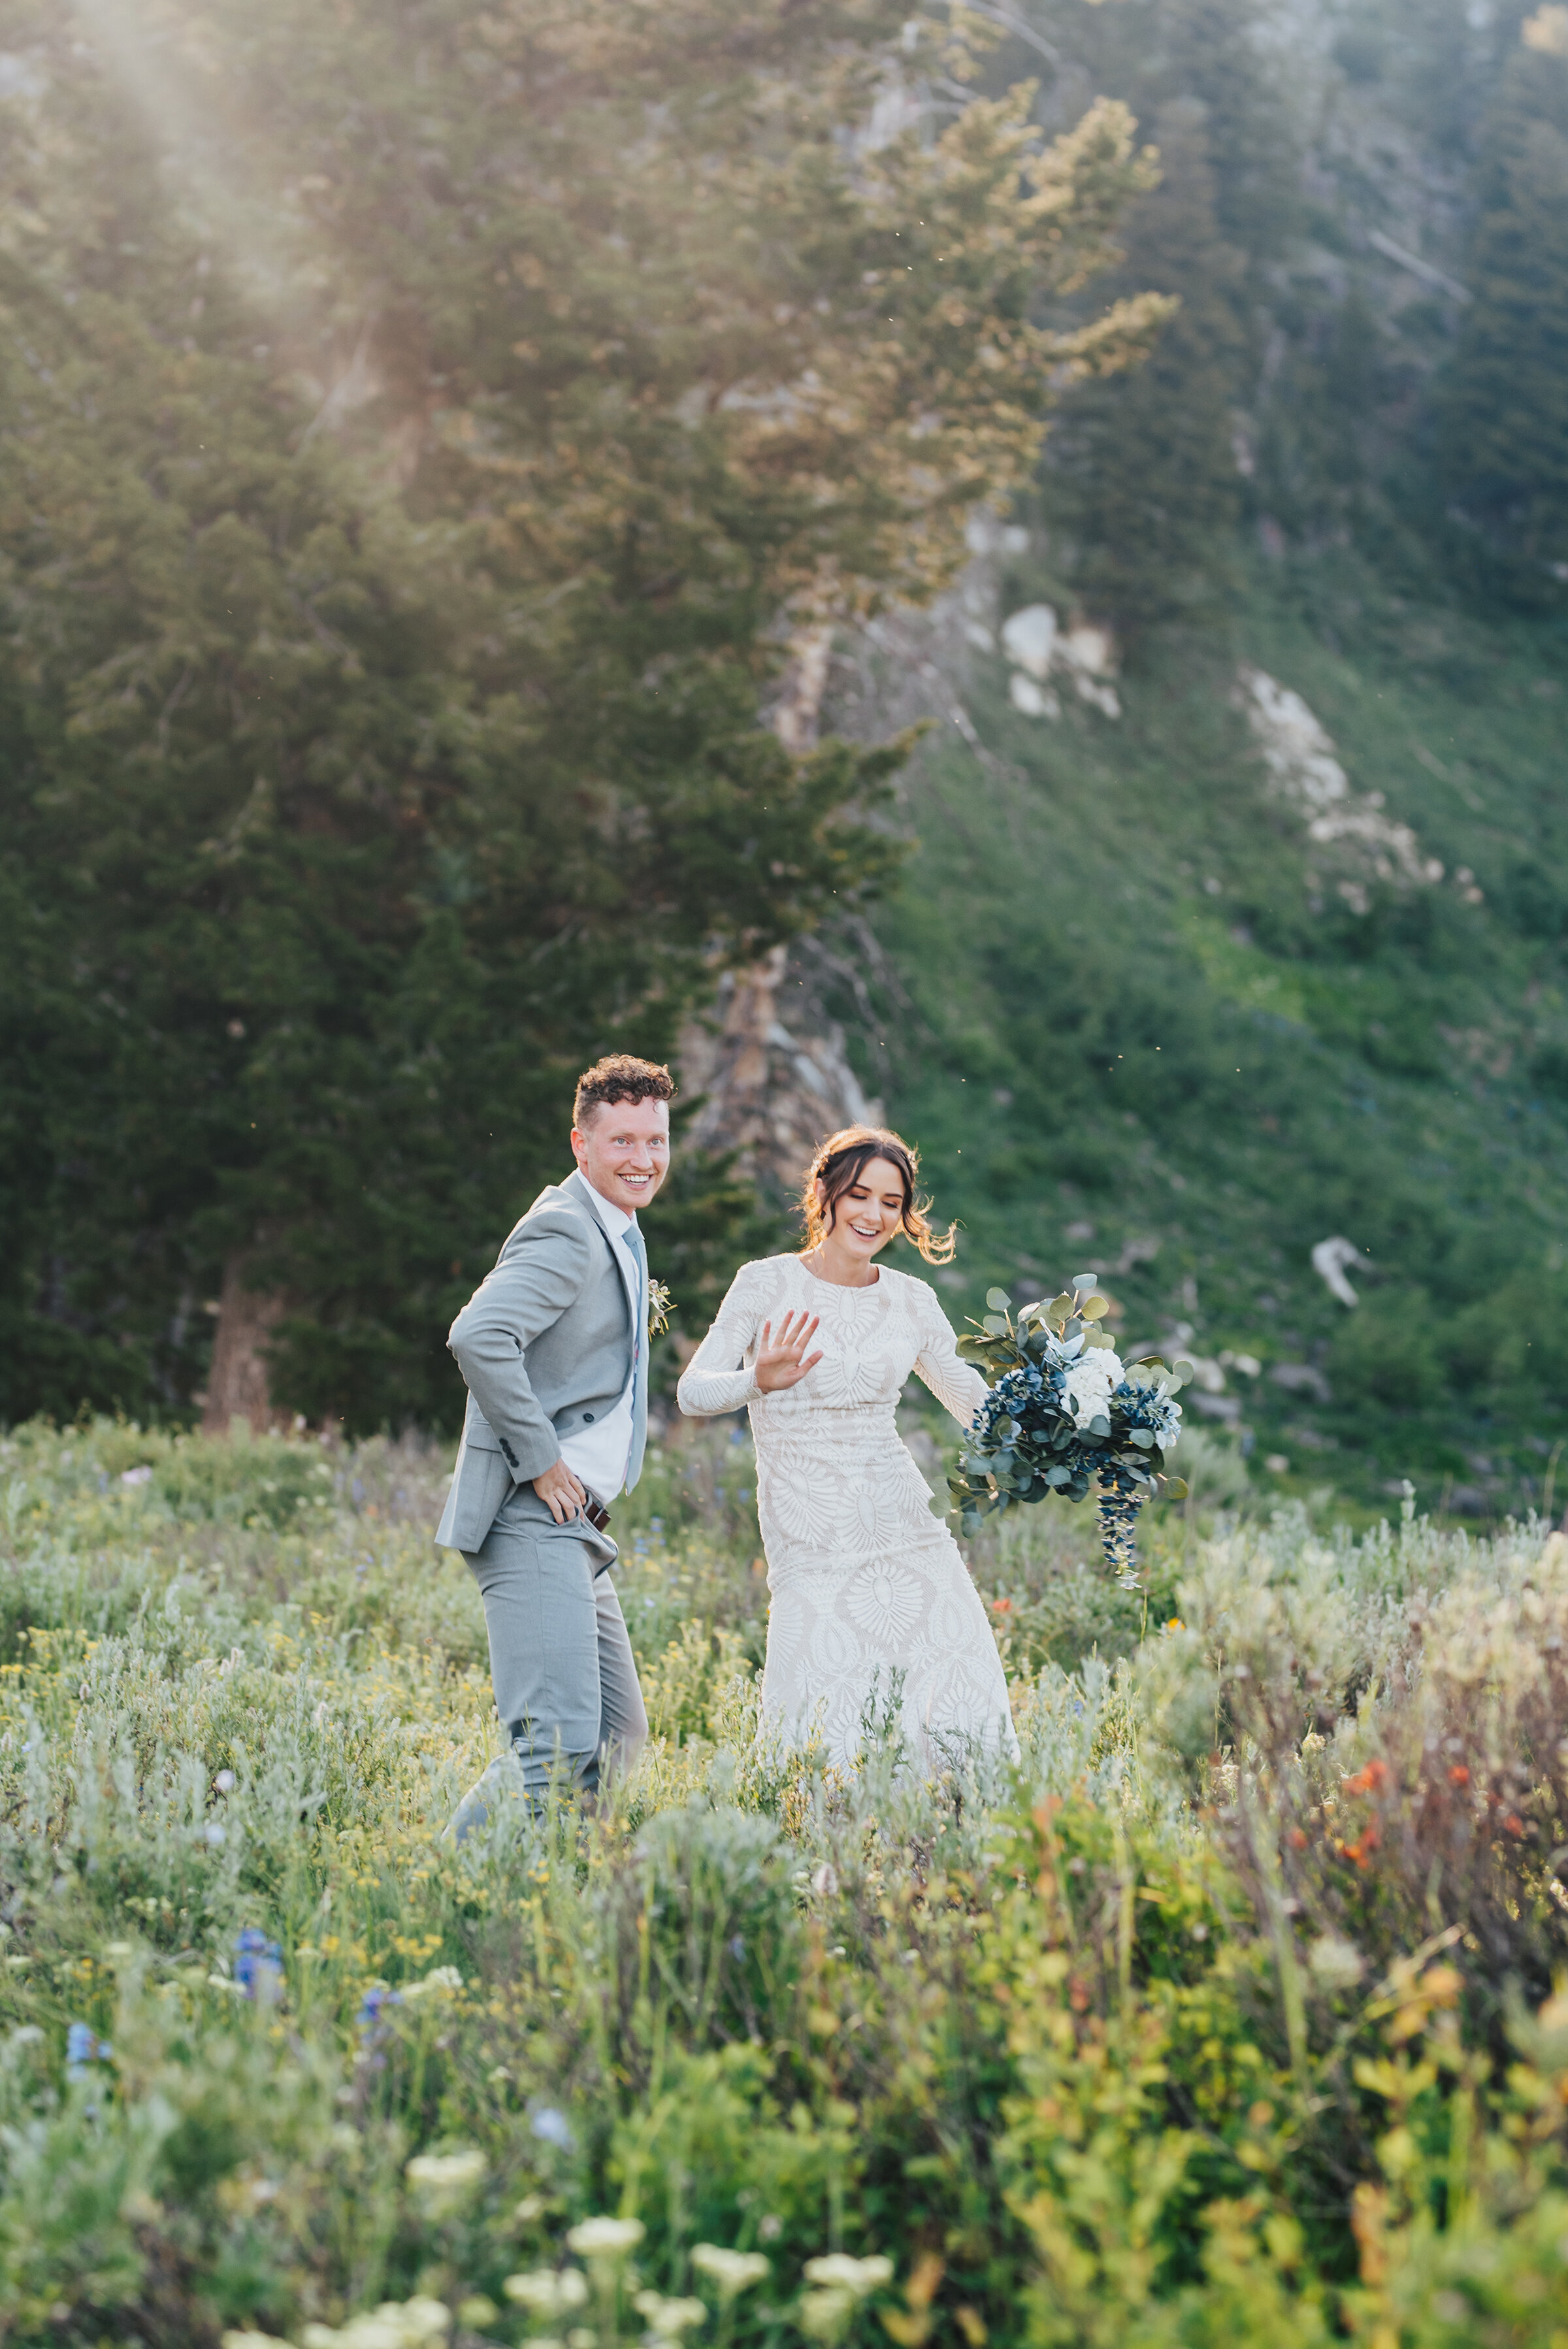 Playful bride and groom in this dreamy wild flower filled meadow for their formals up Logan canyon. Kristi Alyse photography Logan Utah wedding photographer forest nature dreamy formals Logan canyon Tony Grove scenic bridals Northern Utah photographer Utah brides bride and groom Cache Valley #kristialysephotography #loganutahphotographer #tonygrove #logancanyon #utahweddingphotographer #bridals #formals #wildflowers #northernutah #utahbrides